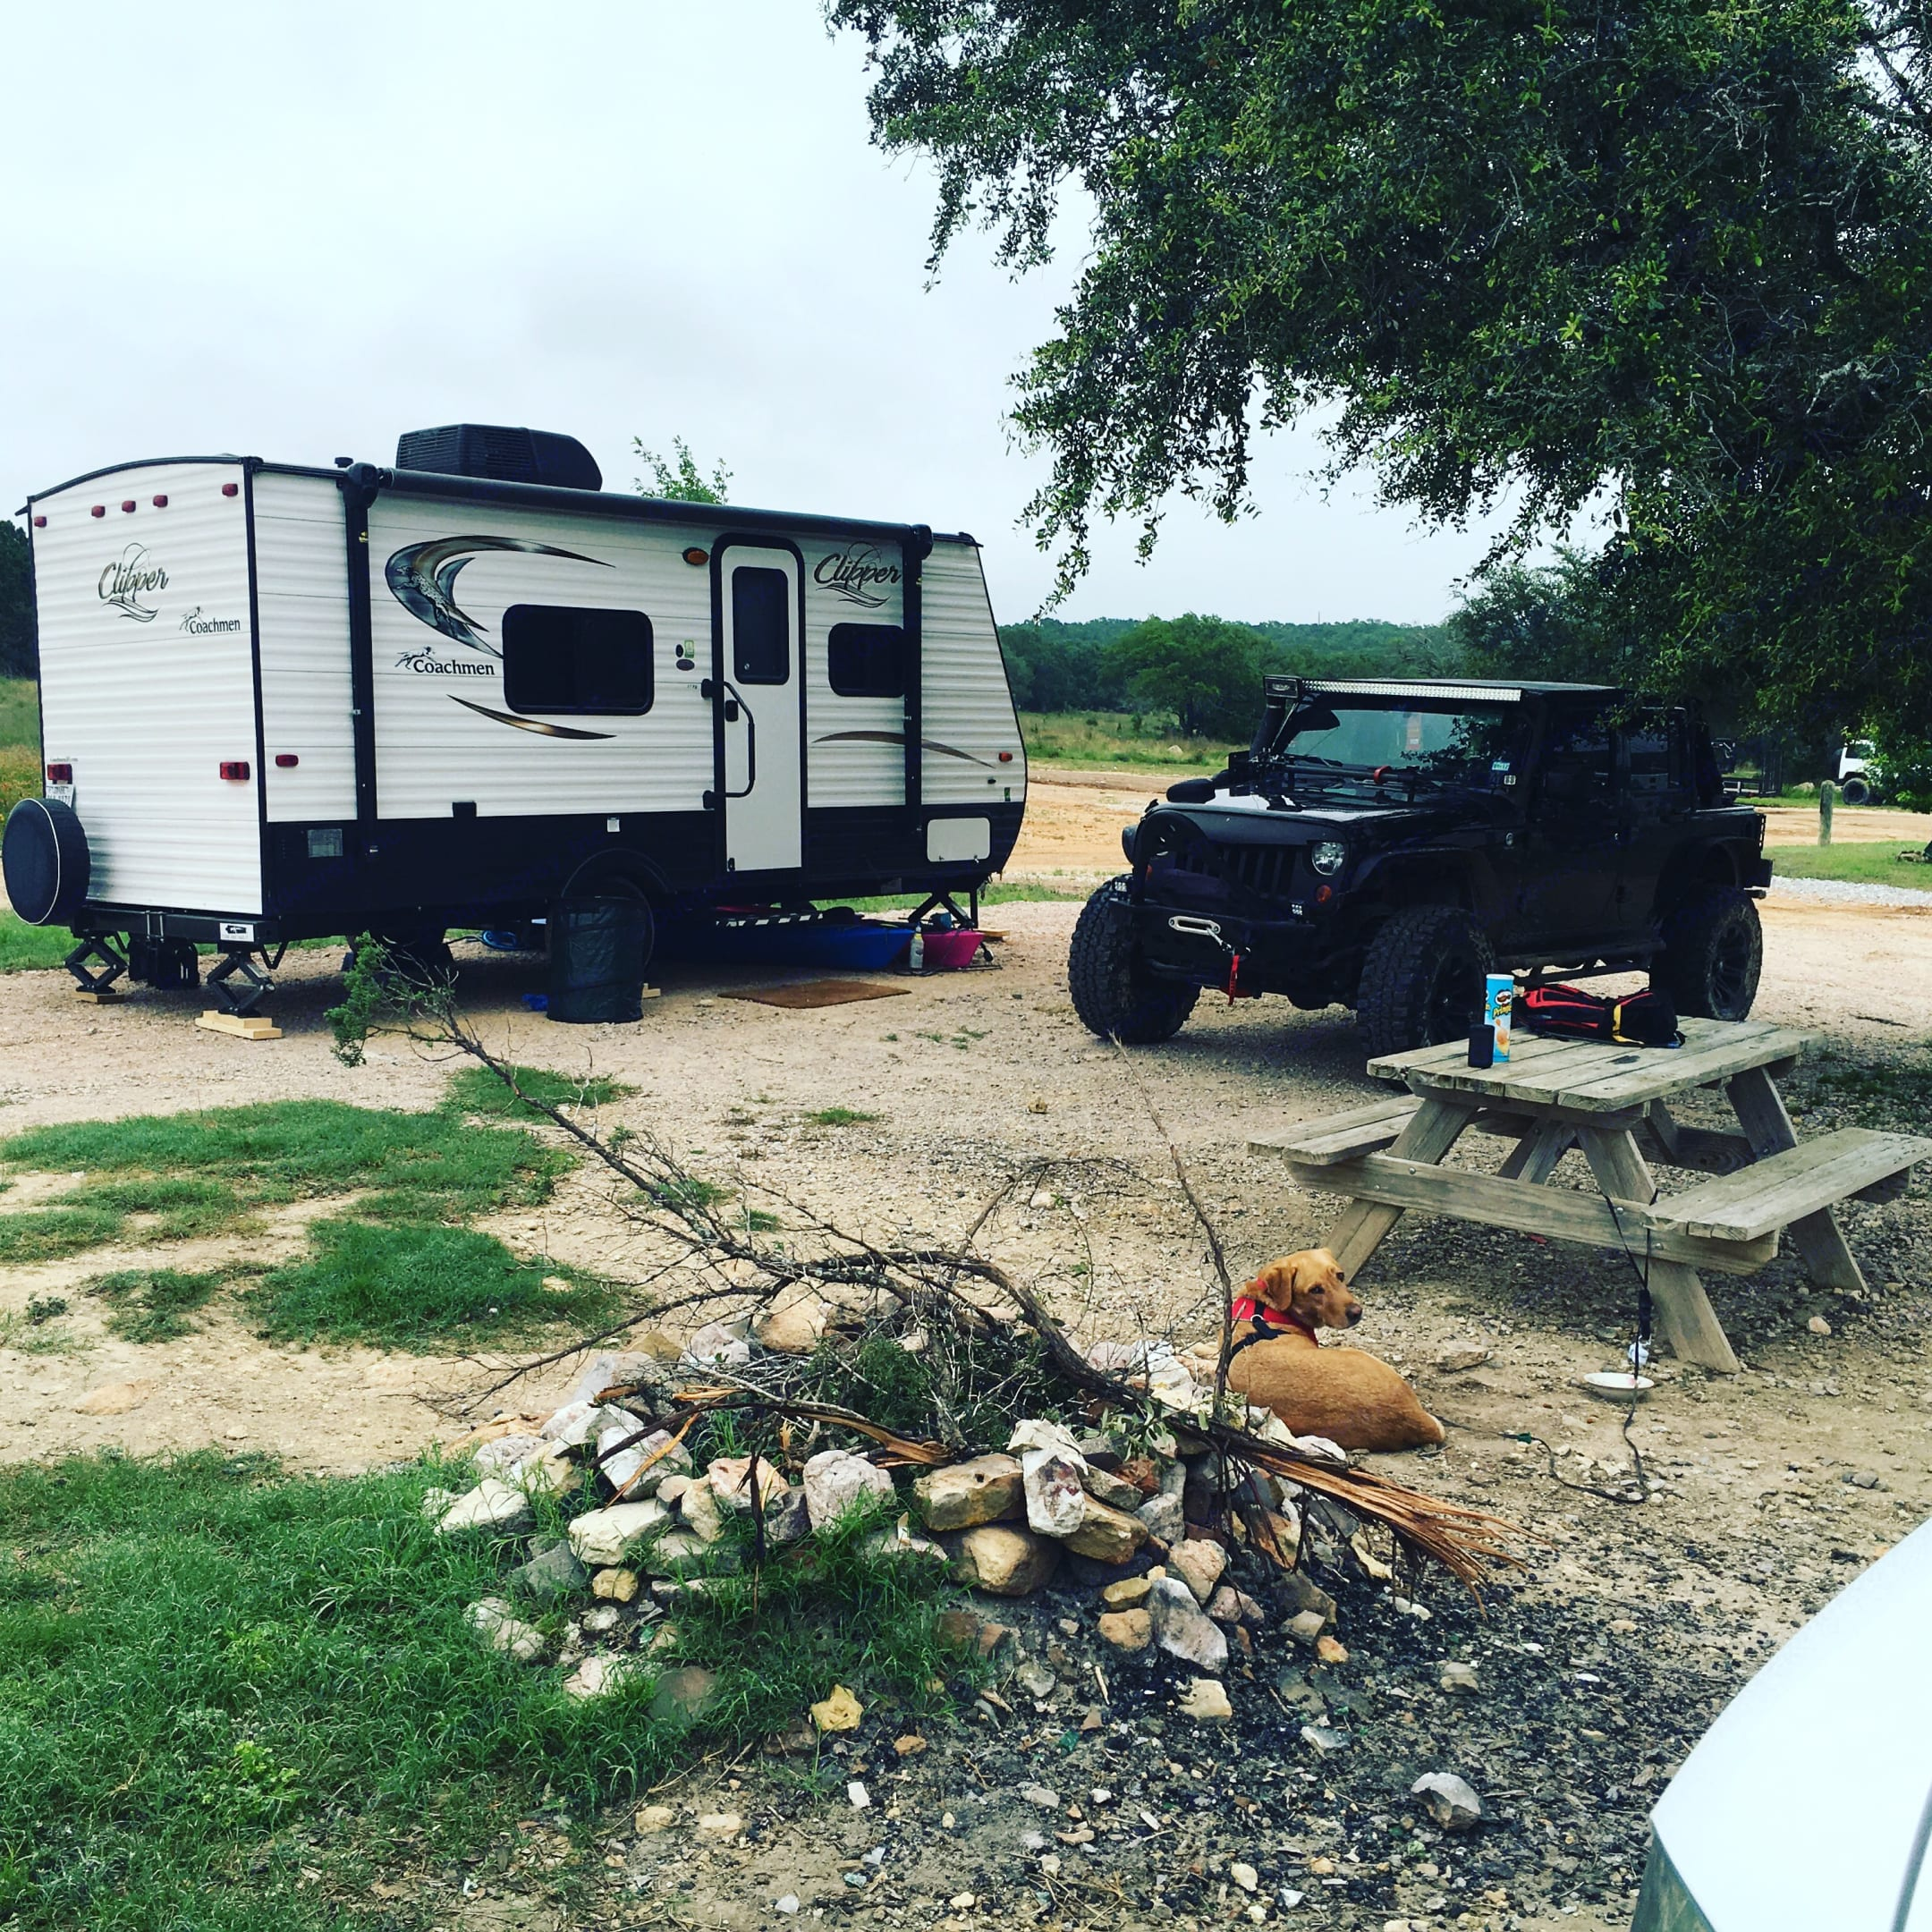 Easily towable with a Jeep Wrangler and safely within the OEM limits. Utilized with an adjustable drop hitch and a sway bar. . Coachmen Clipper 2017